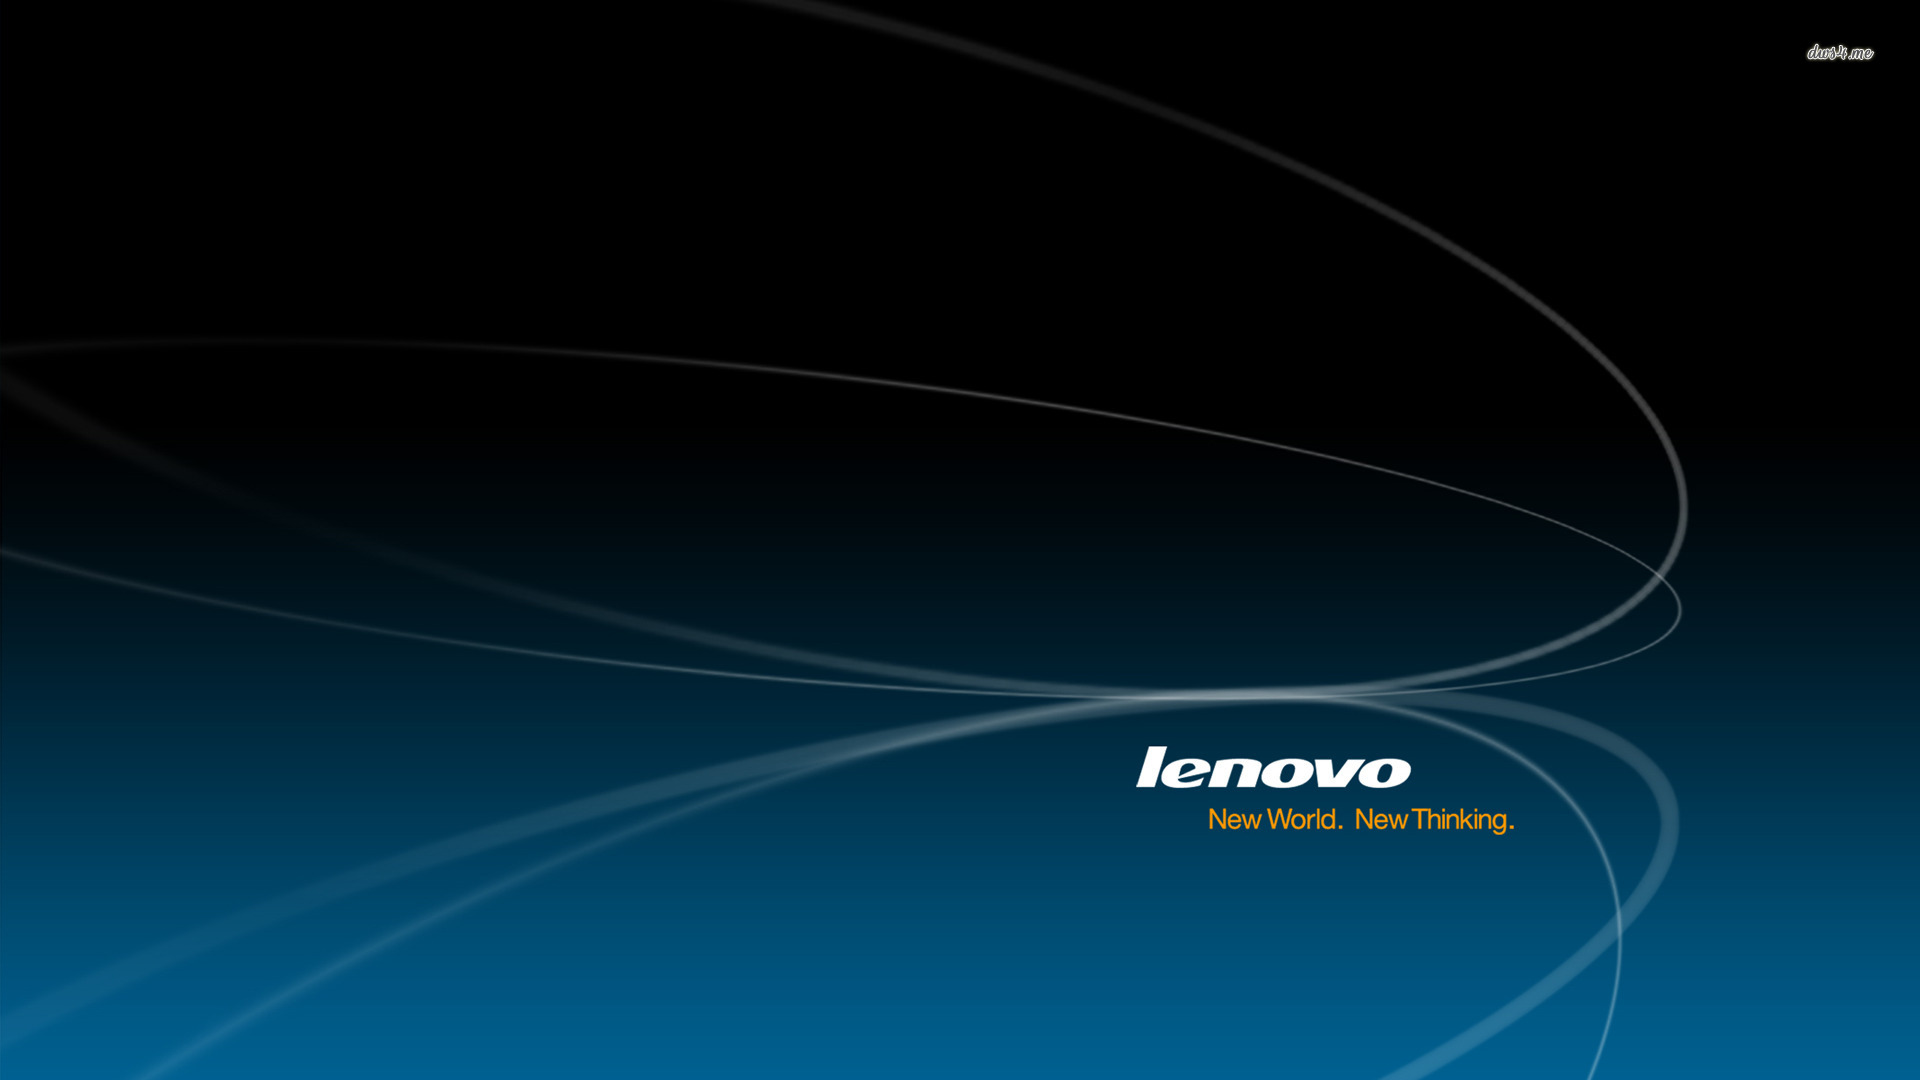 47 Lenovo Wallpaper 1366x768 On Wallpapersafari